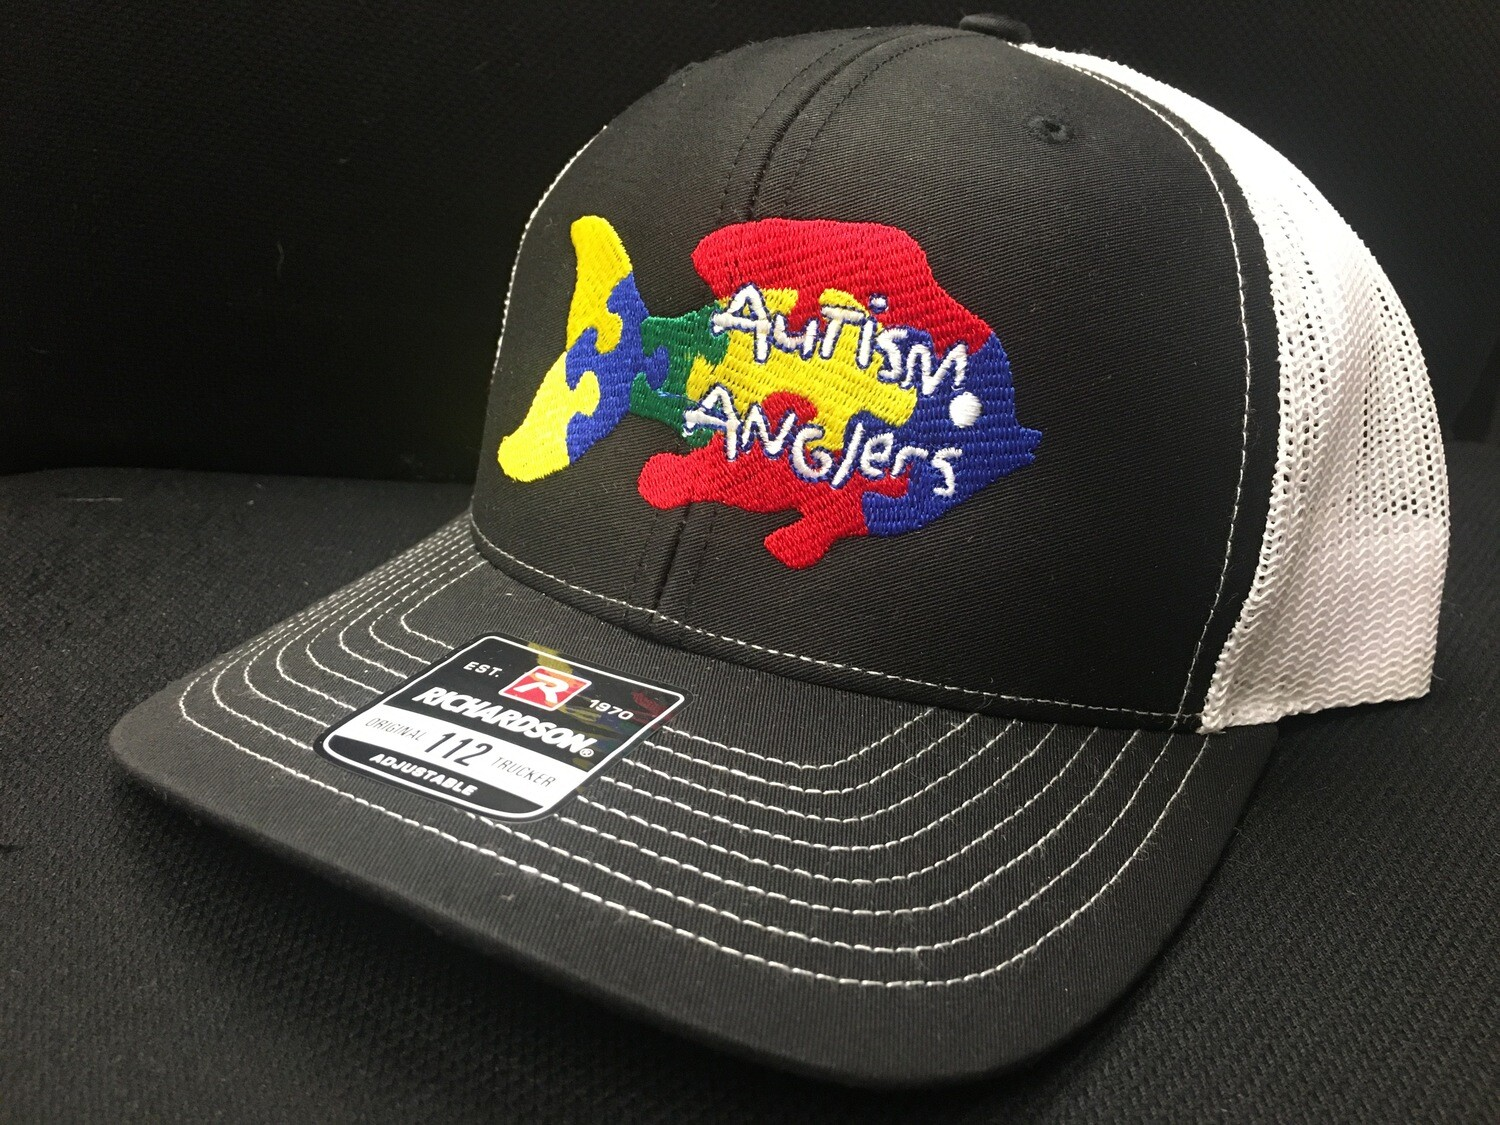 Autism Anglers Snap Back Hat-Black/white